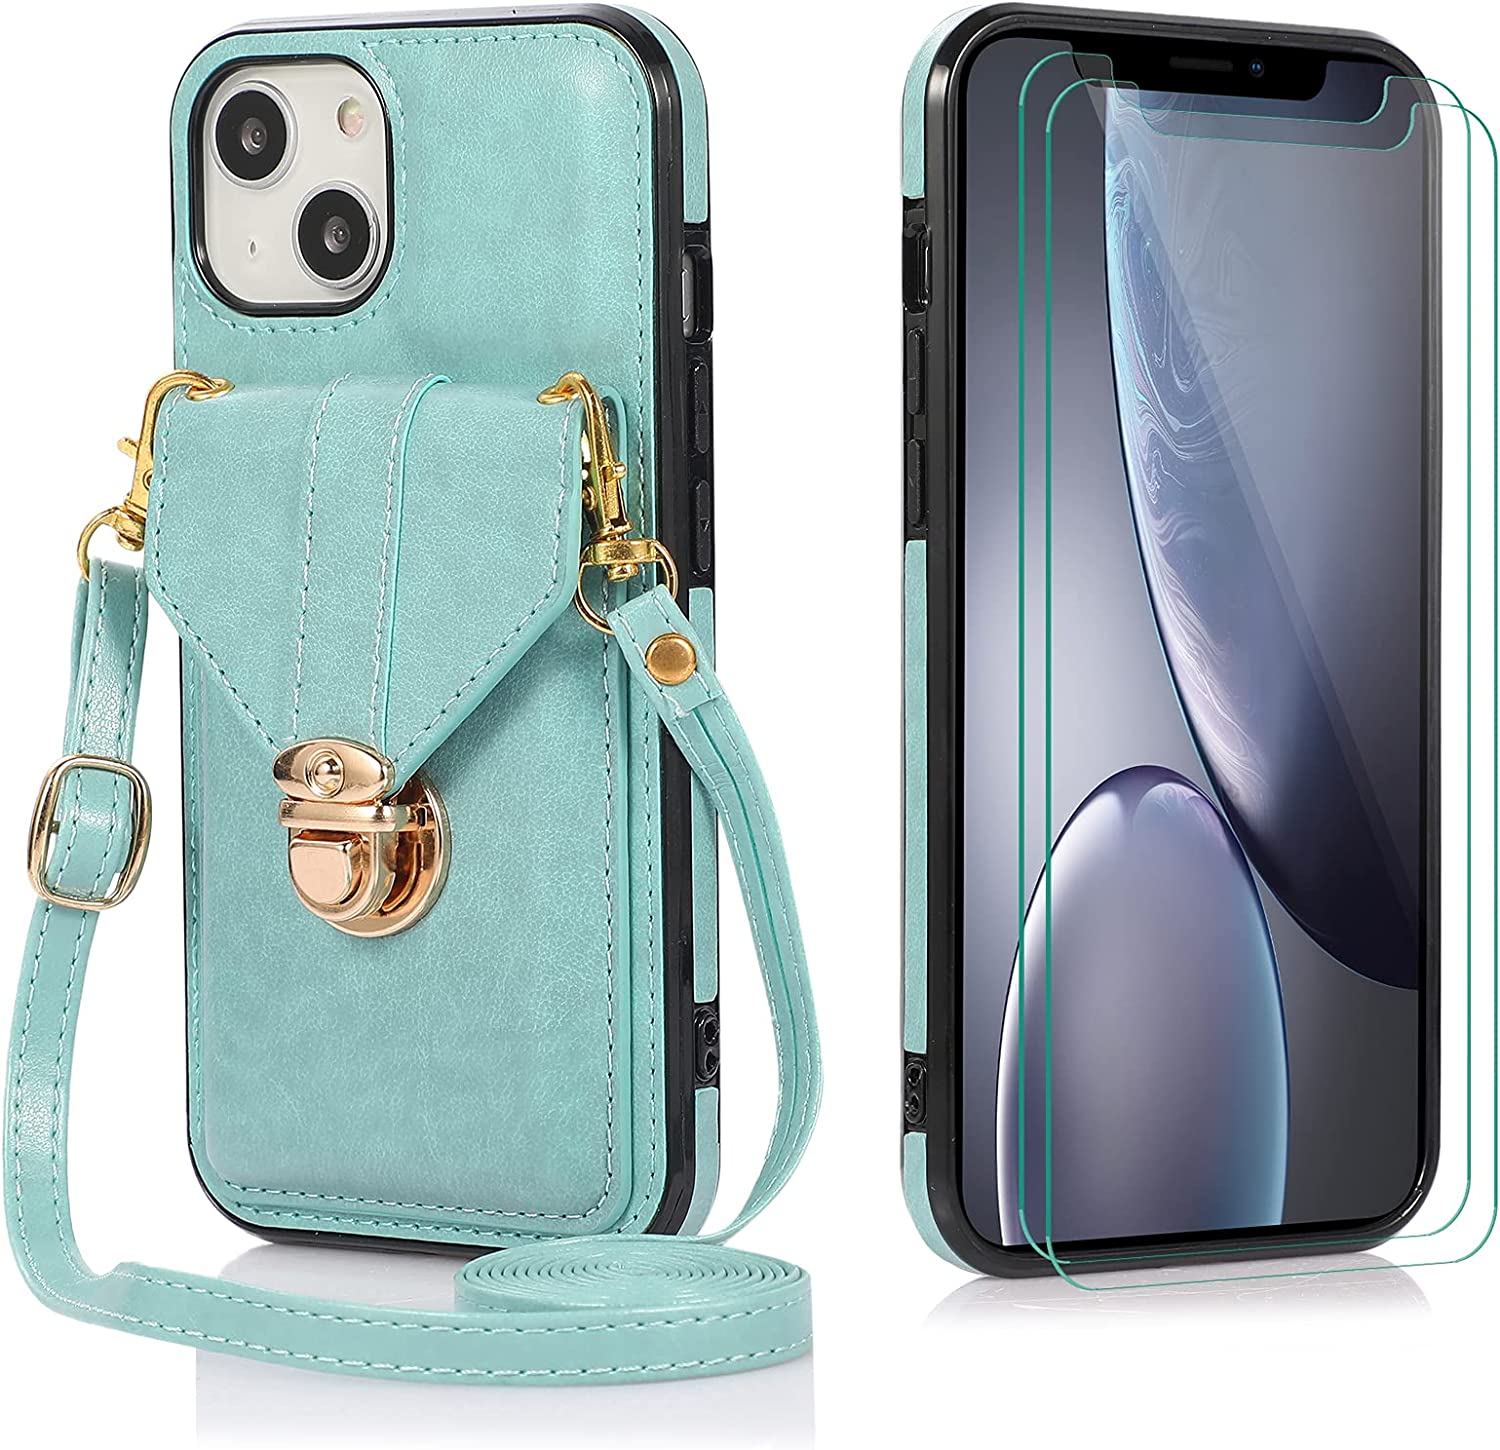 Futanwei Crossbody Slim Wallet Cases Compatible for iPhone 13 Case with [2 Pack] Tempered Glass Screen Protector, Luxury Women's Card Holder Case with Crossbody Strap Lanyard, Turquoise